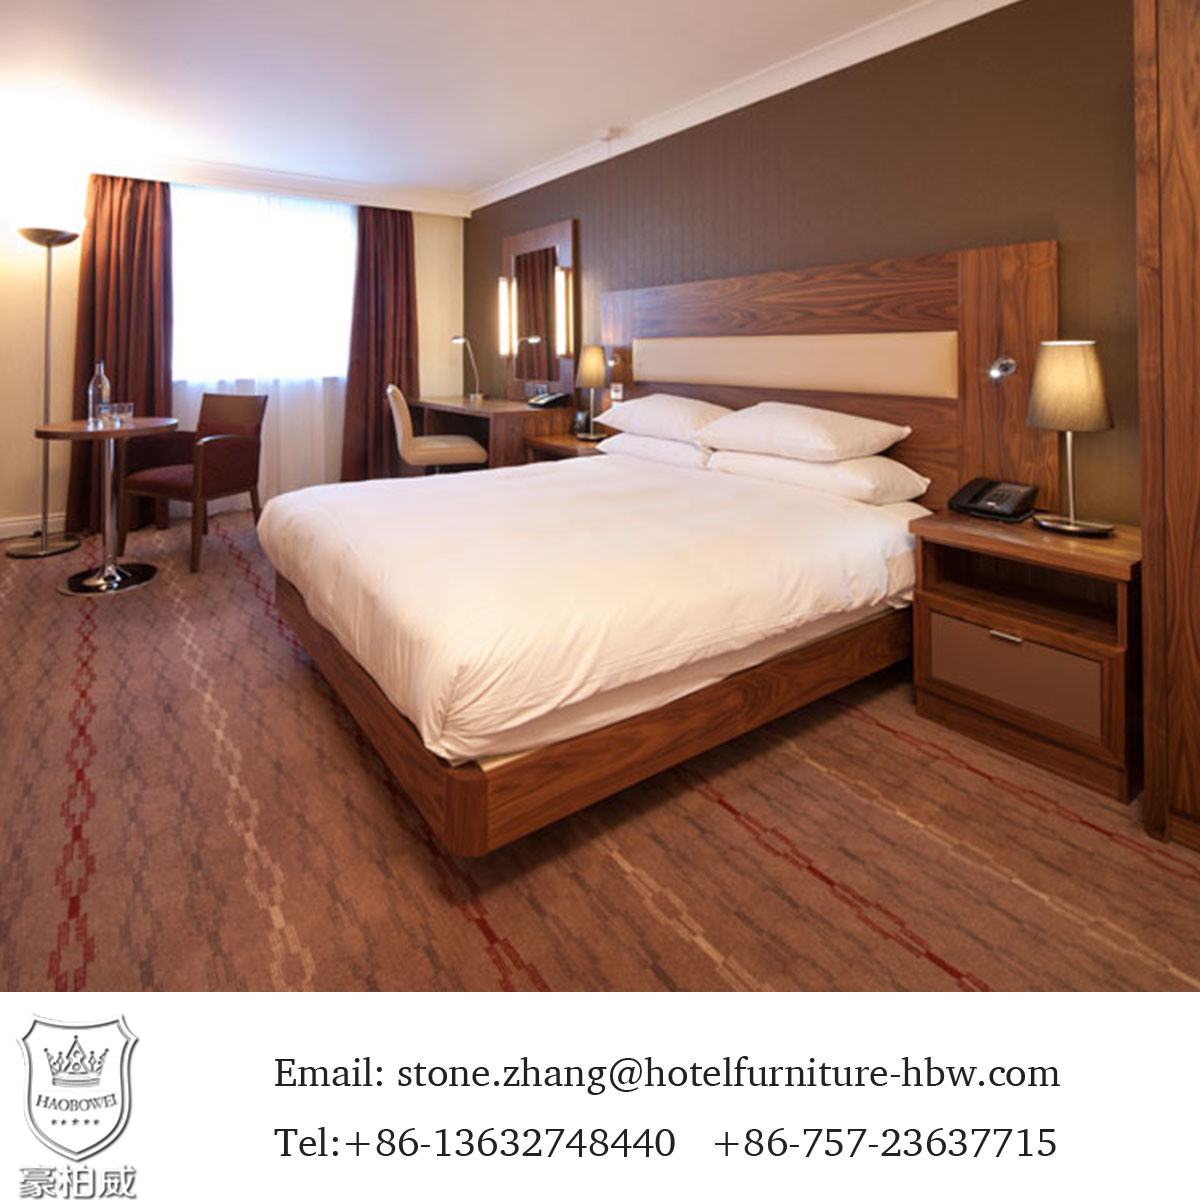 New Design Hotel Room Furniture From China Supplier for Sale